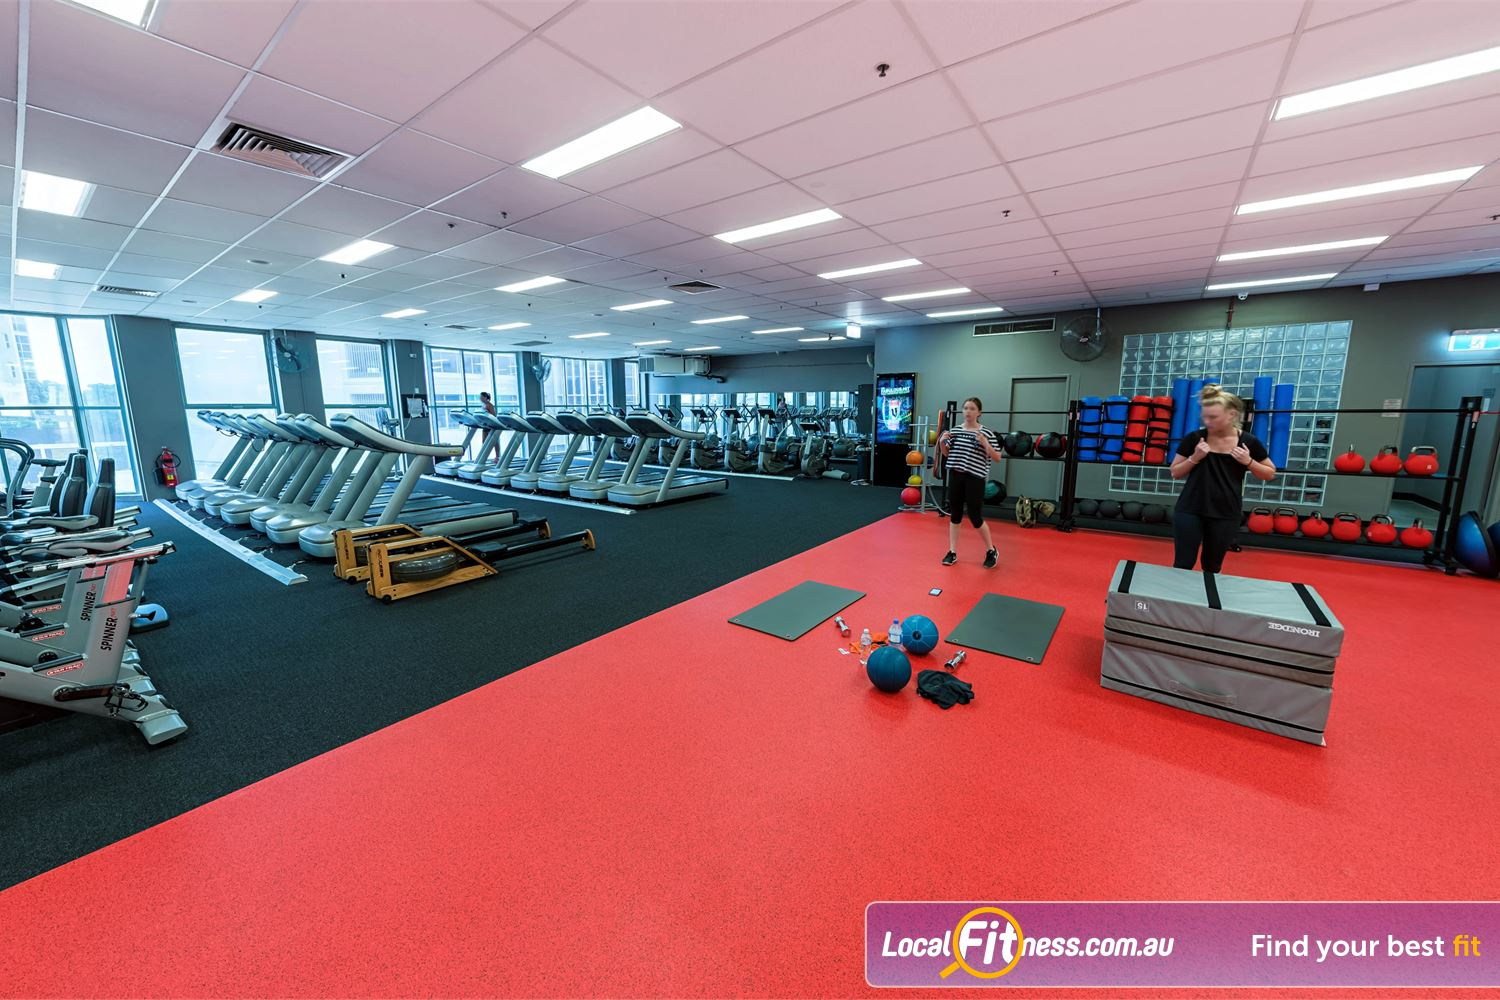 Fitness First Platinum Spring St Near Bellevue Hill Fitness First Bondi provides strength, cardio and freestyle workouts all under one roof.